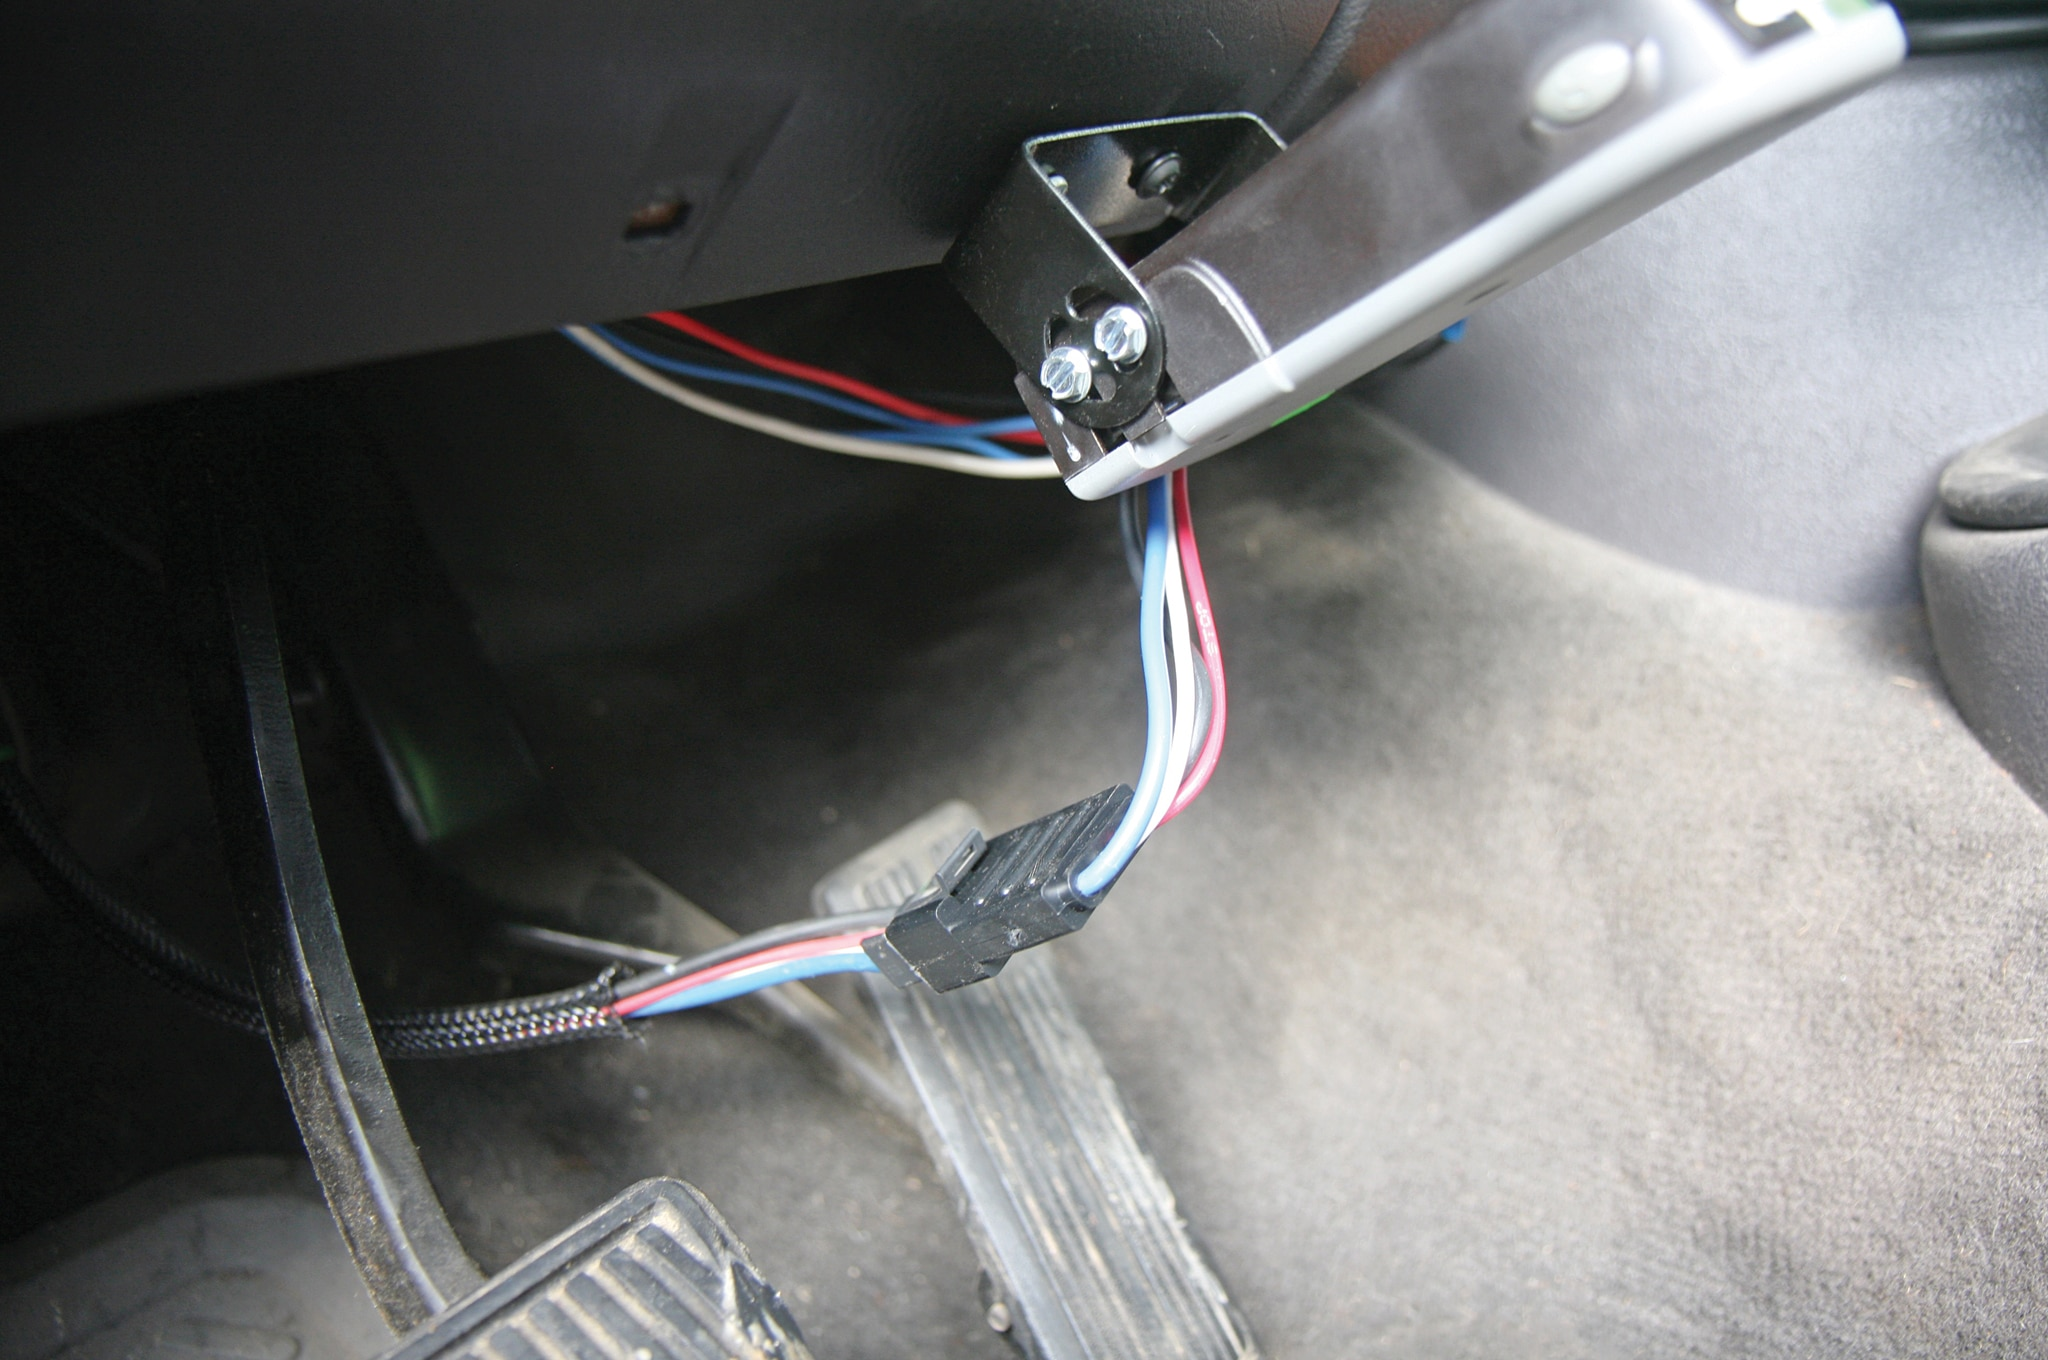 husky towing products quest brake controller wiring view photo gallery 7 photos [ 2048 x 1360 Pixel ]